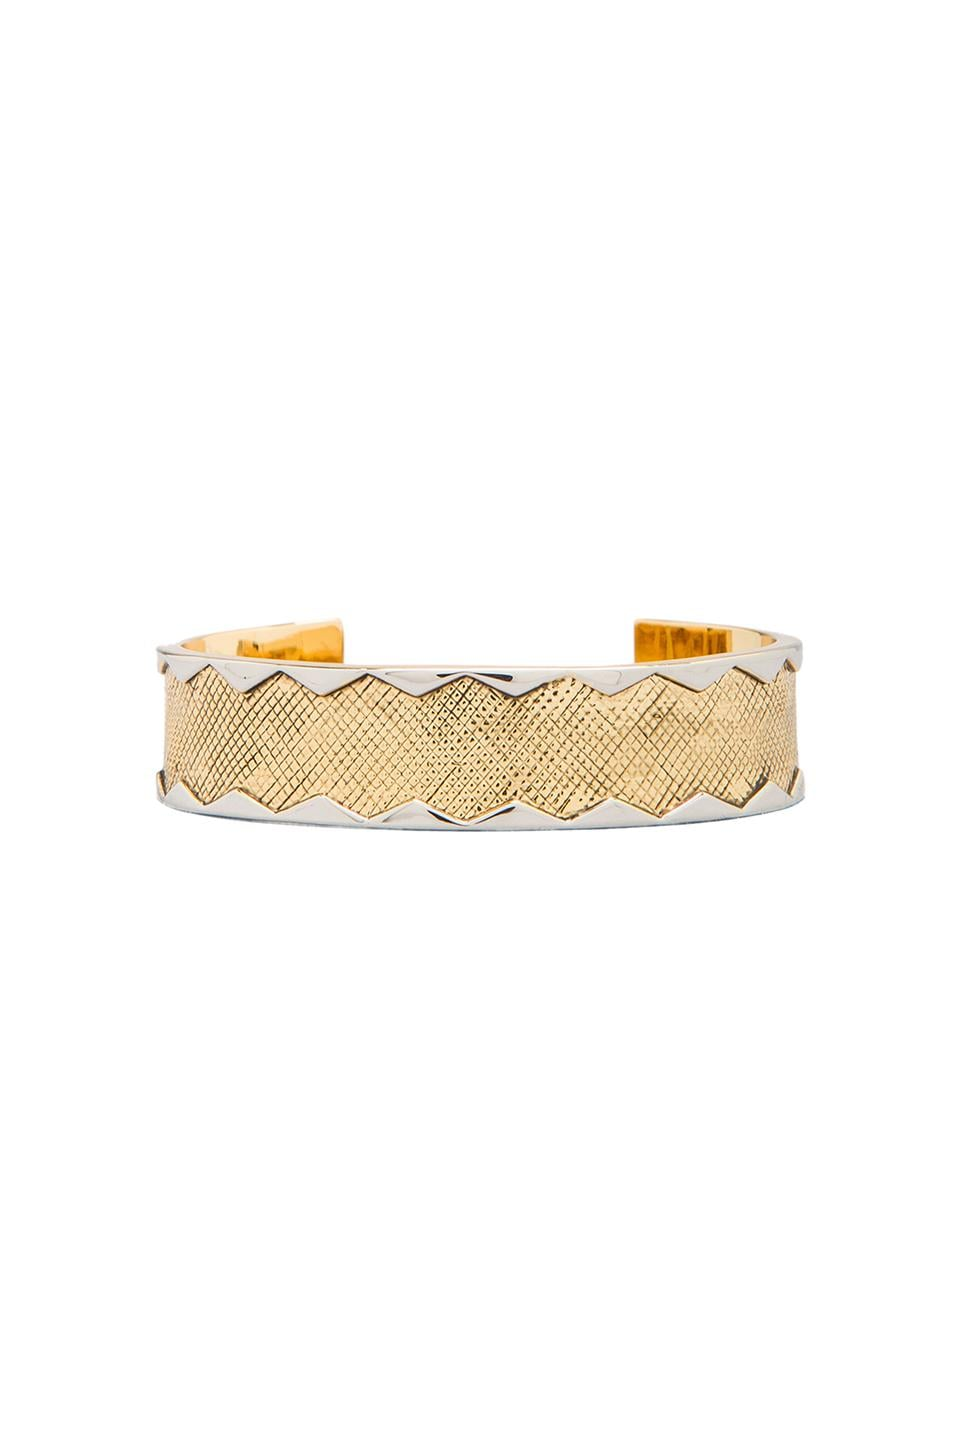 House of Harlow Wavelength Cuff in Gold